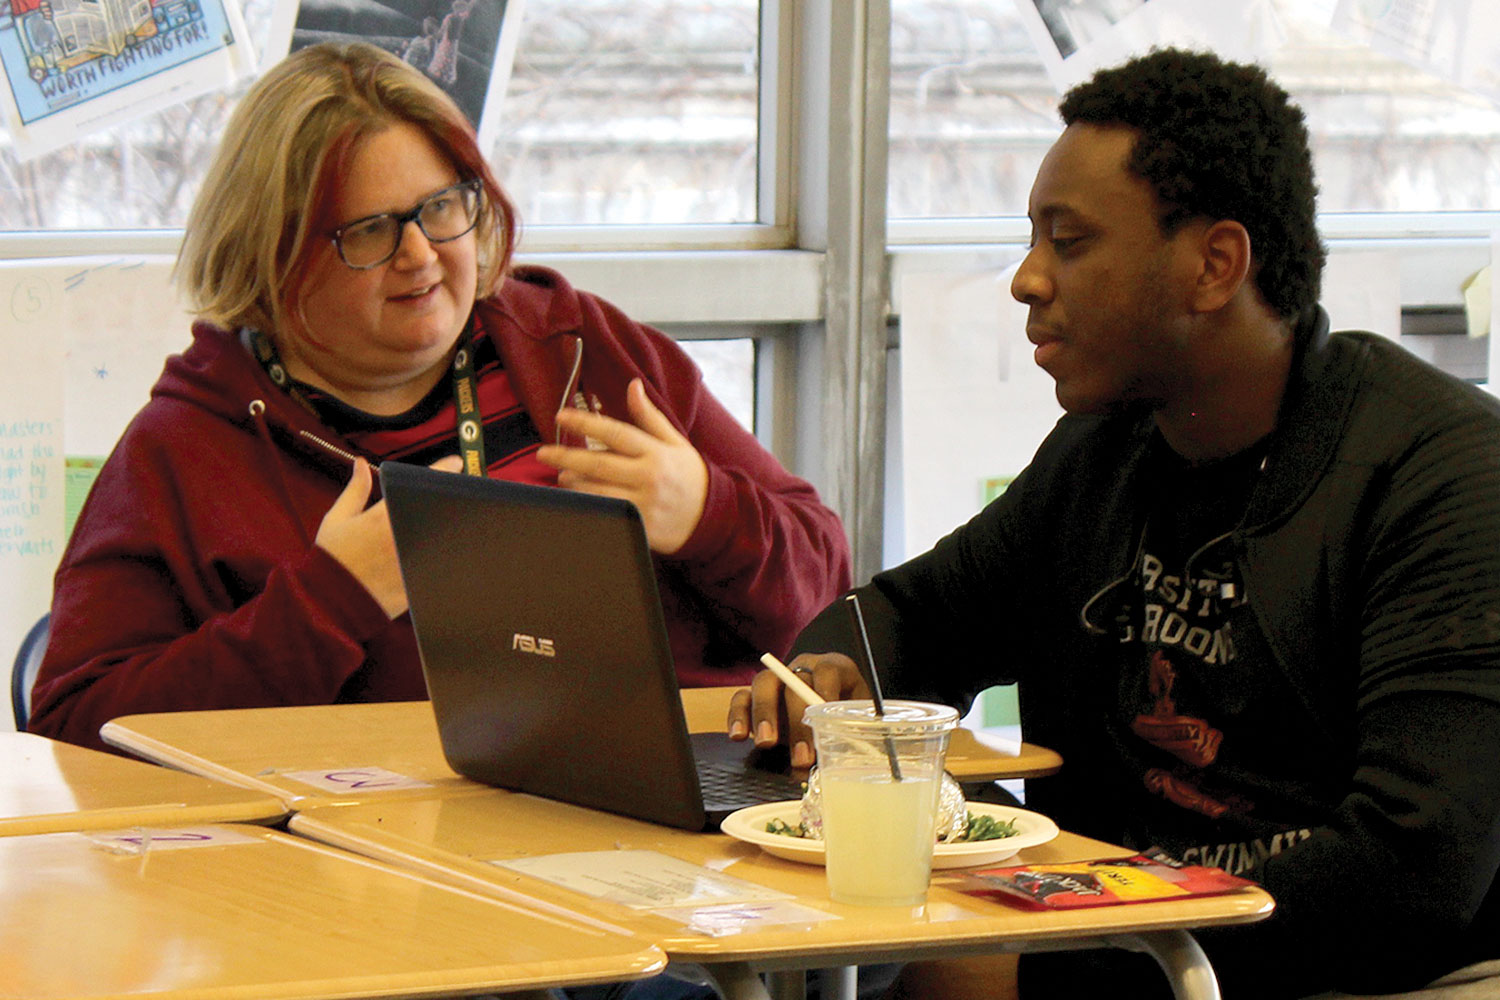 BUILDING COMMUNITY. Gesturing, middle school language teacher Deb Foote discusses with senior Robert Coats during a Spectrum meeting. Ms. Foote is the new adviser, taking over former teacher Daniel Bobo-Jones' position.